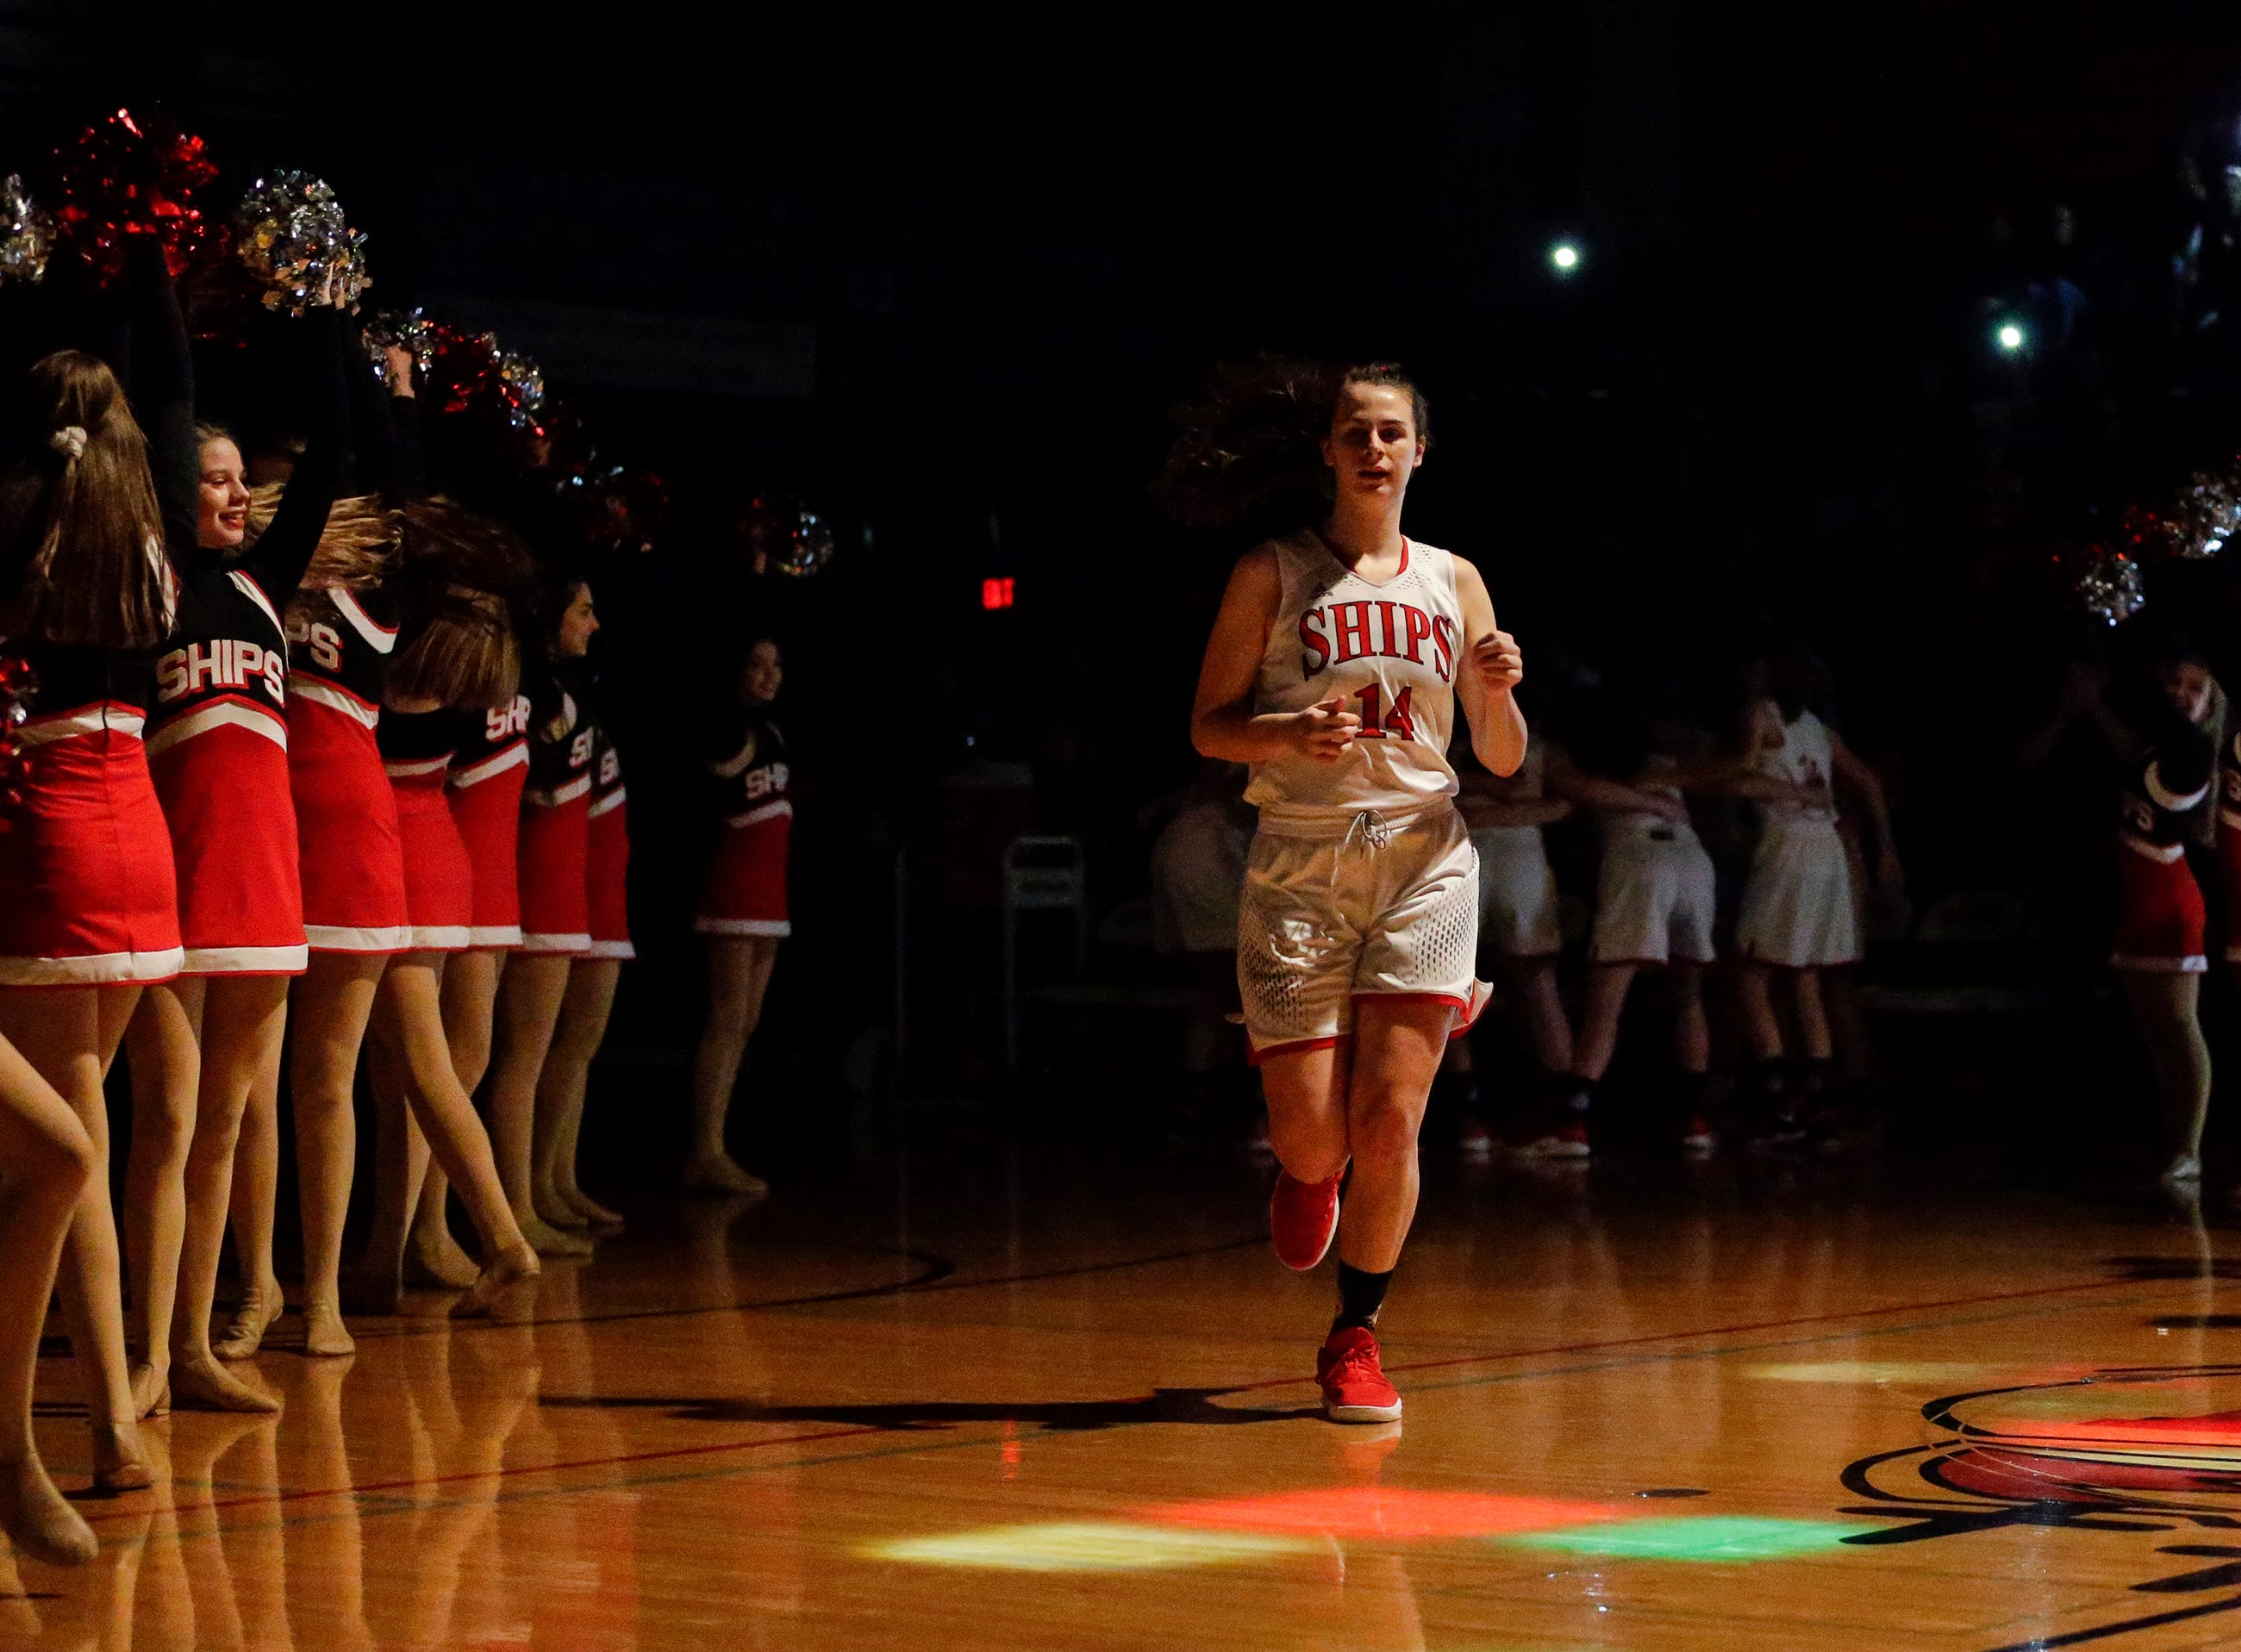 Manitowoc Lincoln's Claire Swoboda runs onto the court during introductions before an FRCC matchup against Sheboygan South at Manitowoc Lincoln High School Friday, January 4, 2019, in Manitowoc, Wis. Joshua Clark/USA TODAY NETWORK-Wisconsin